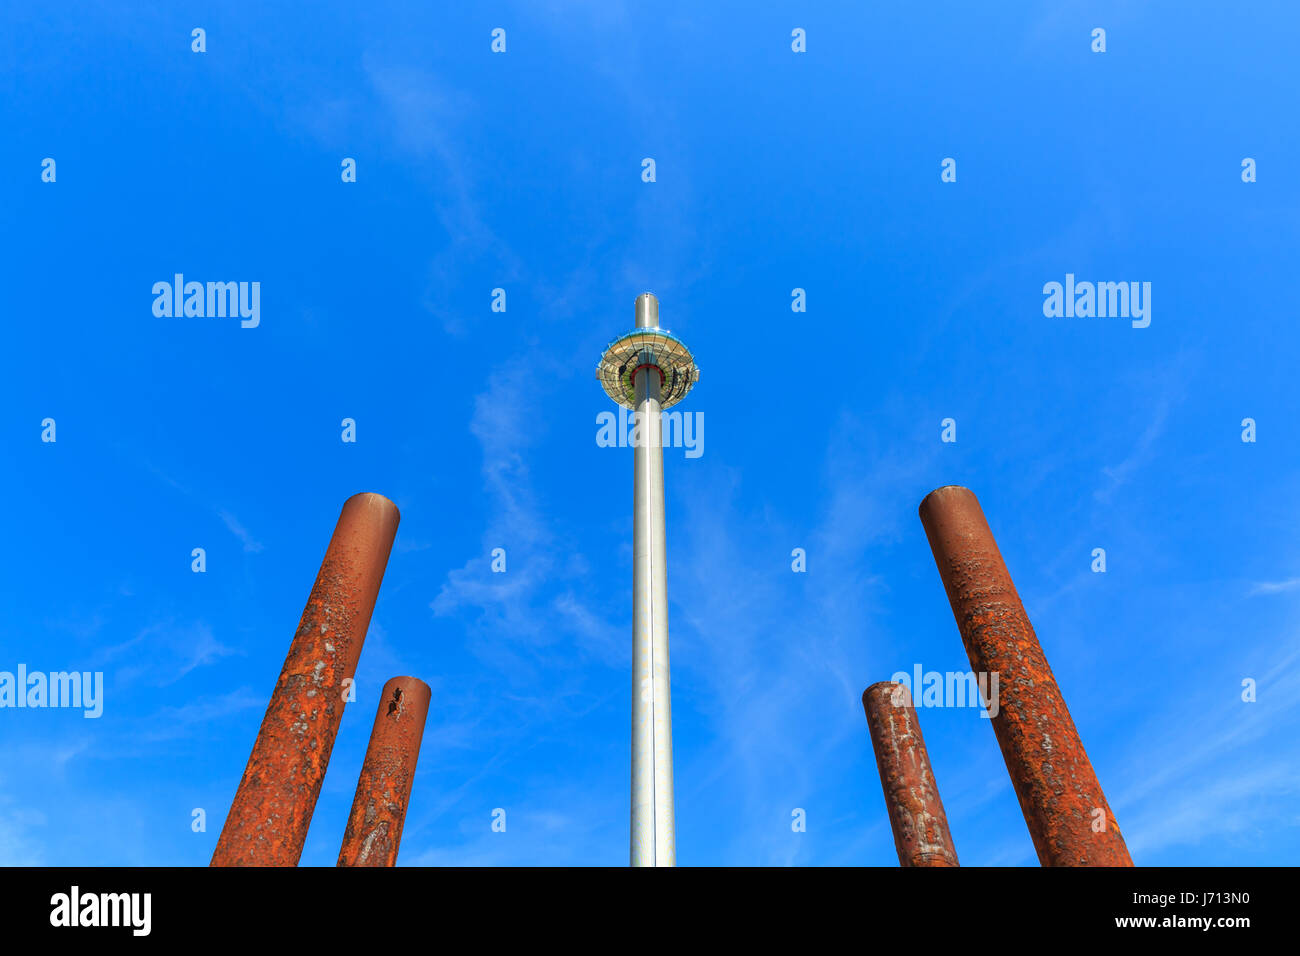 Brighton i360 observation tower on the seafront, with the rusty pier supports of the old West Pier in the foreground. Stock Photo